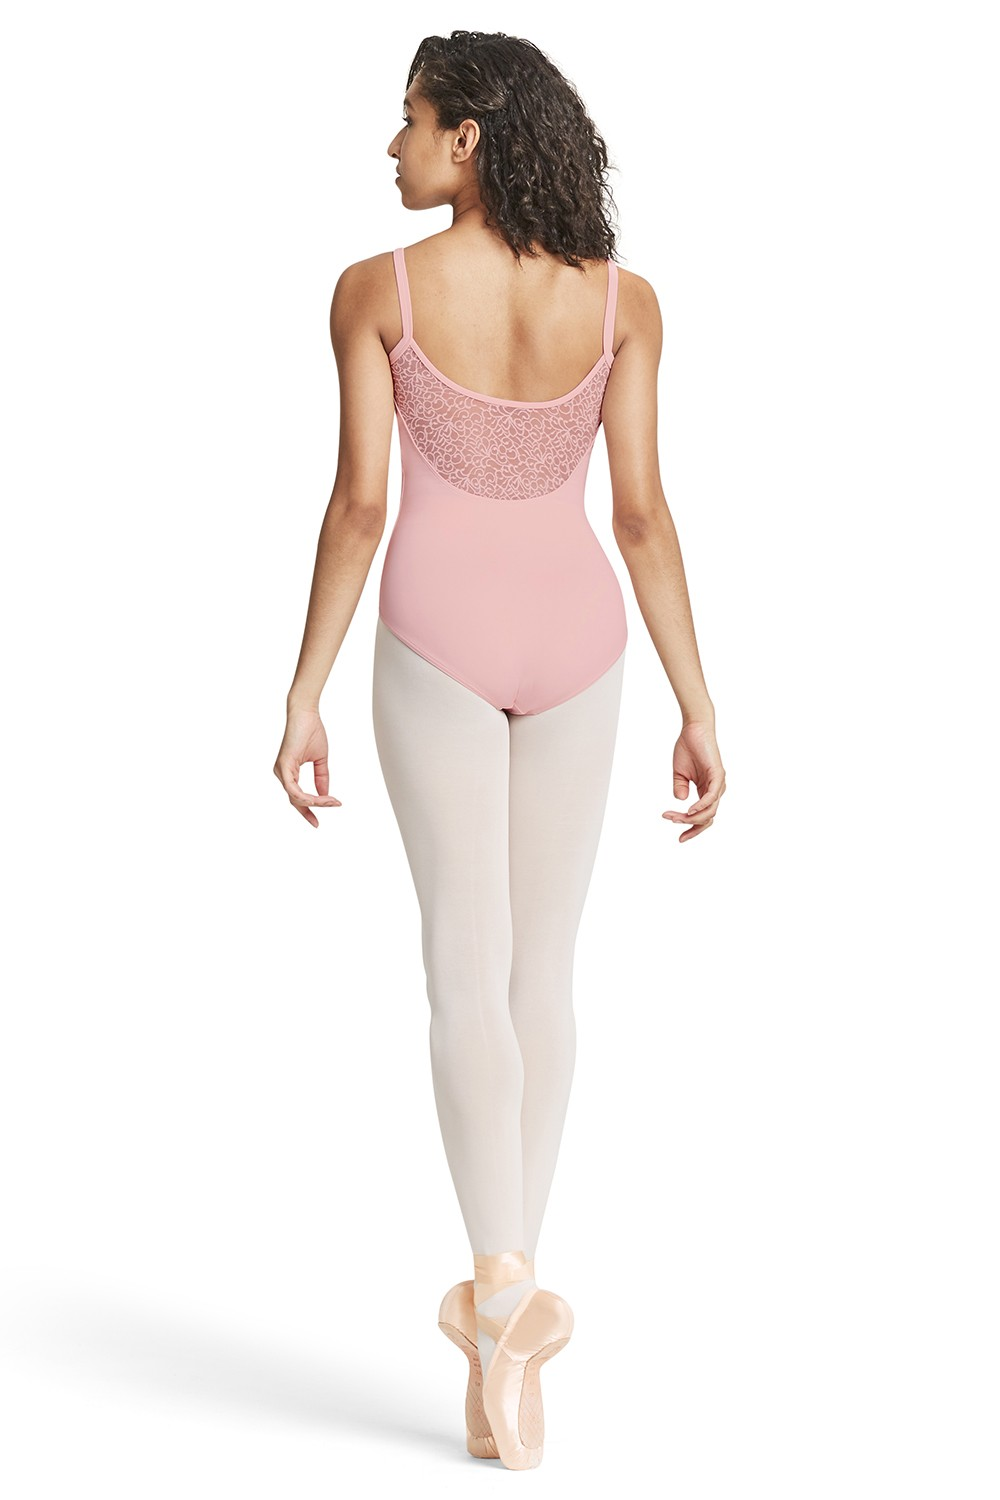 Mesh Scoop Back Camisole Leotard Women's Dance Leotards